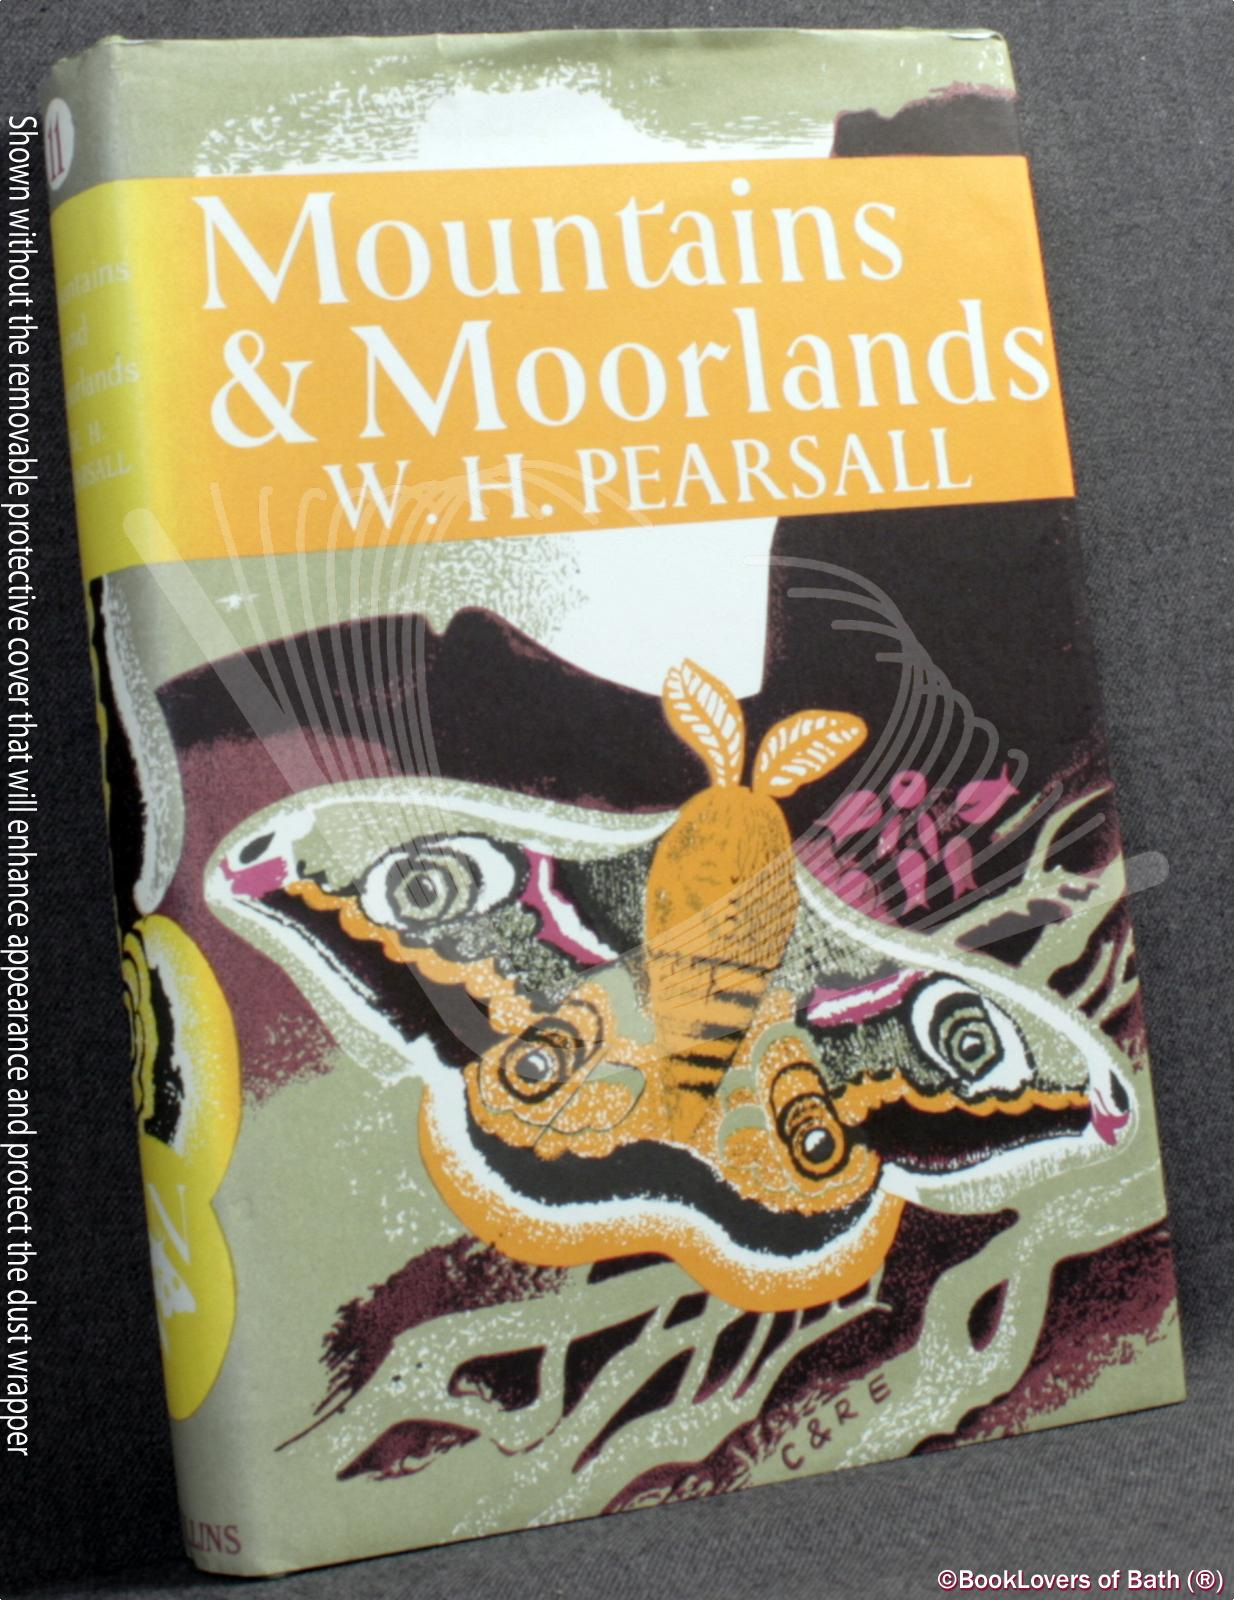 Mountains and Moorlands - W. H. Pearsall